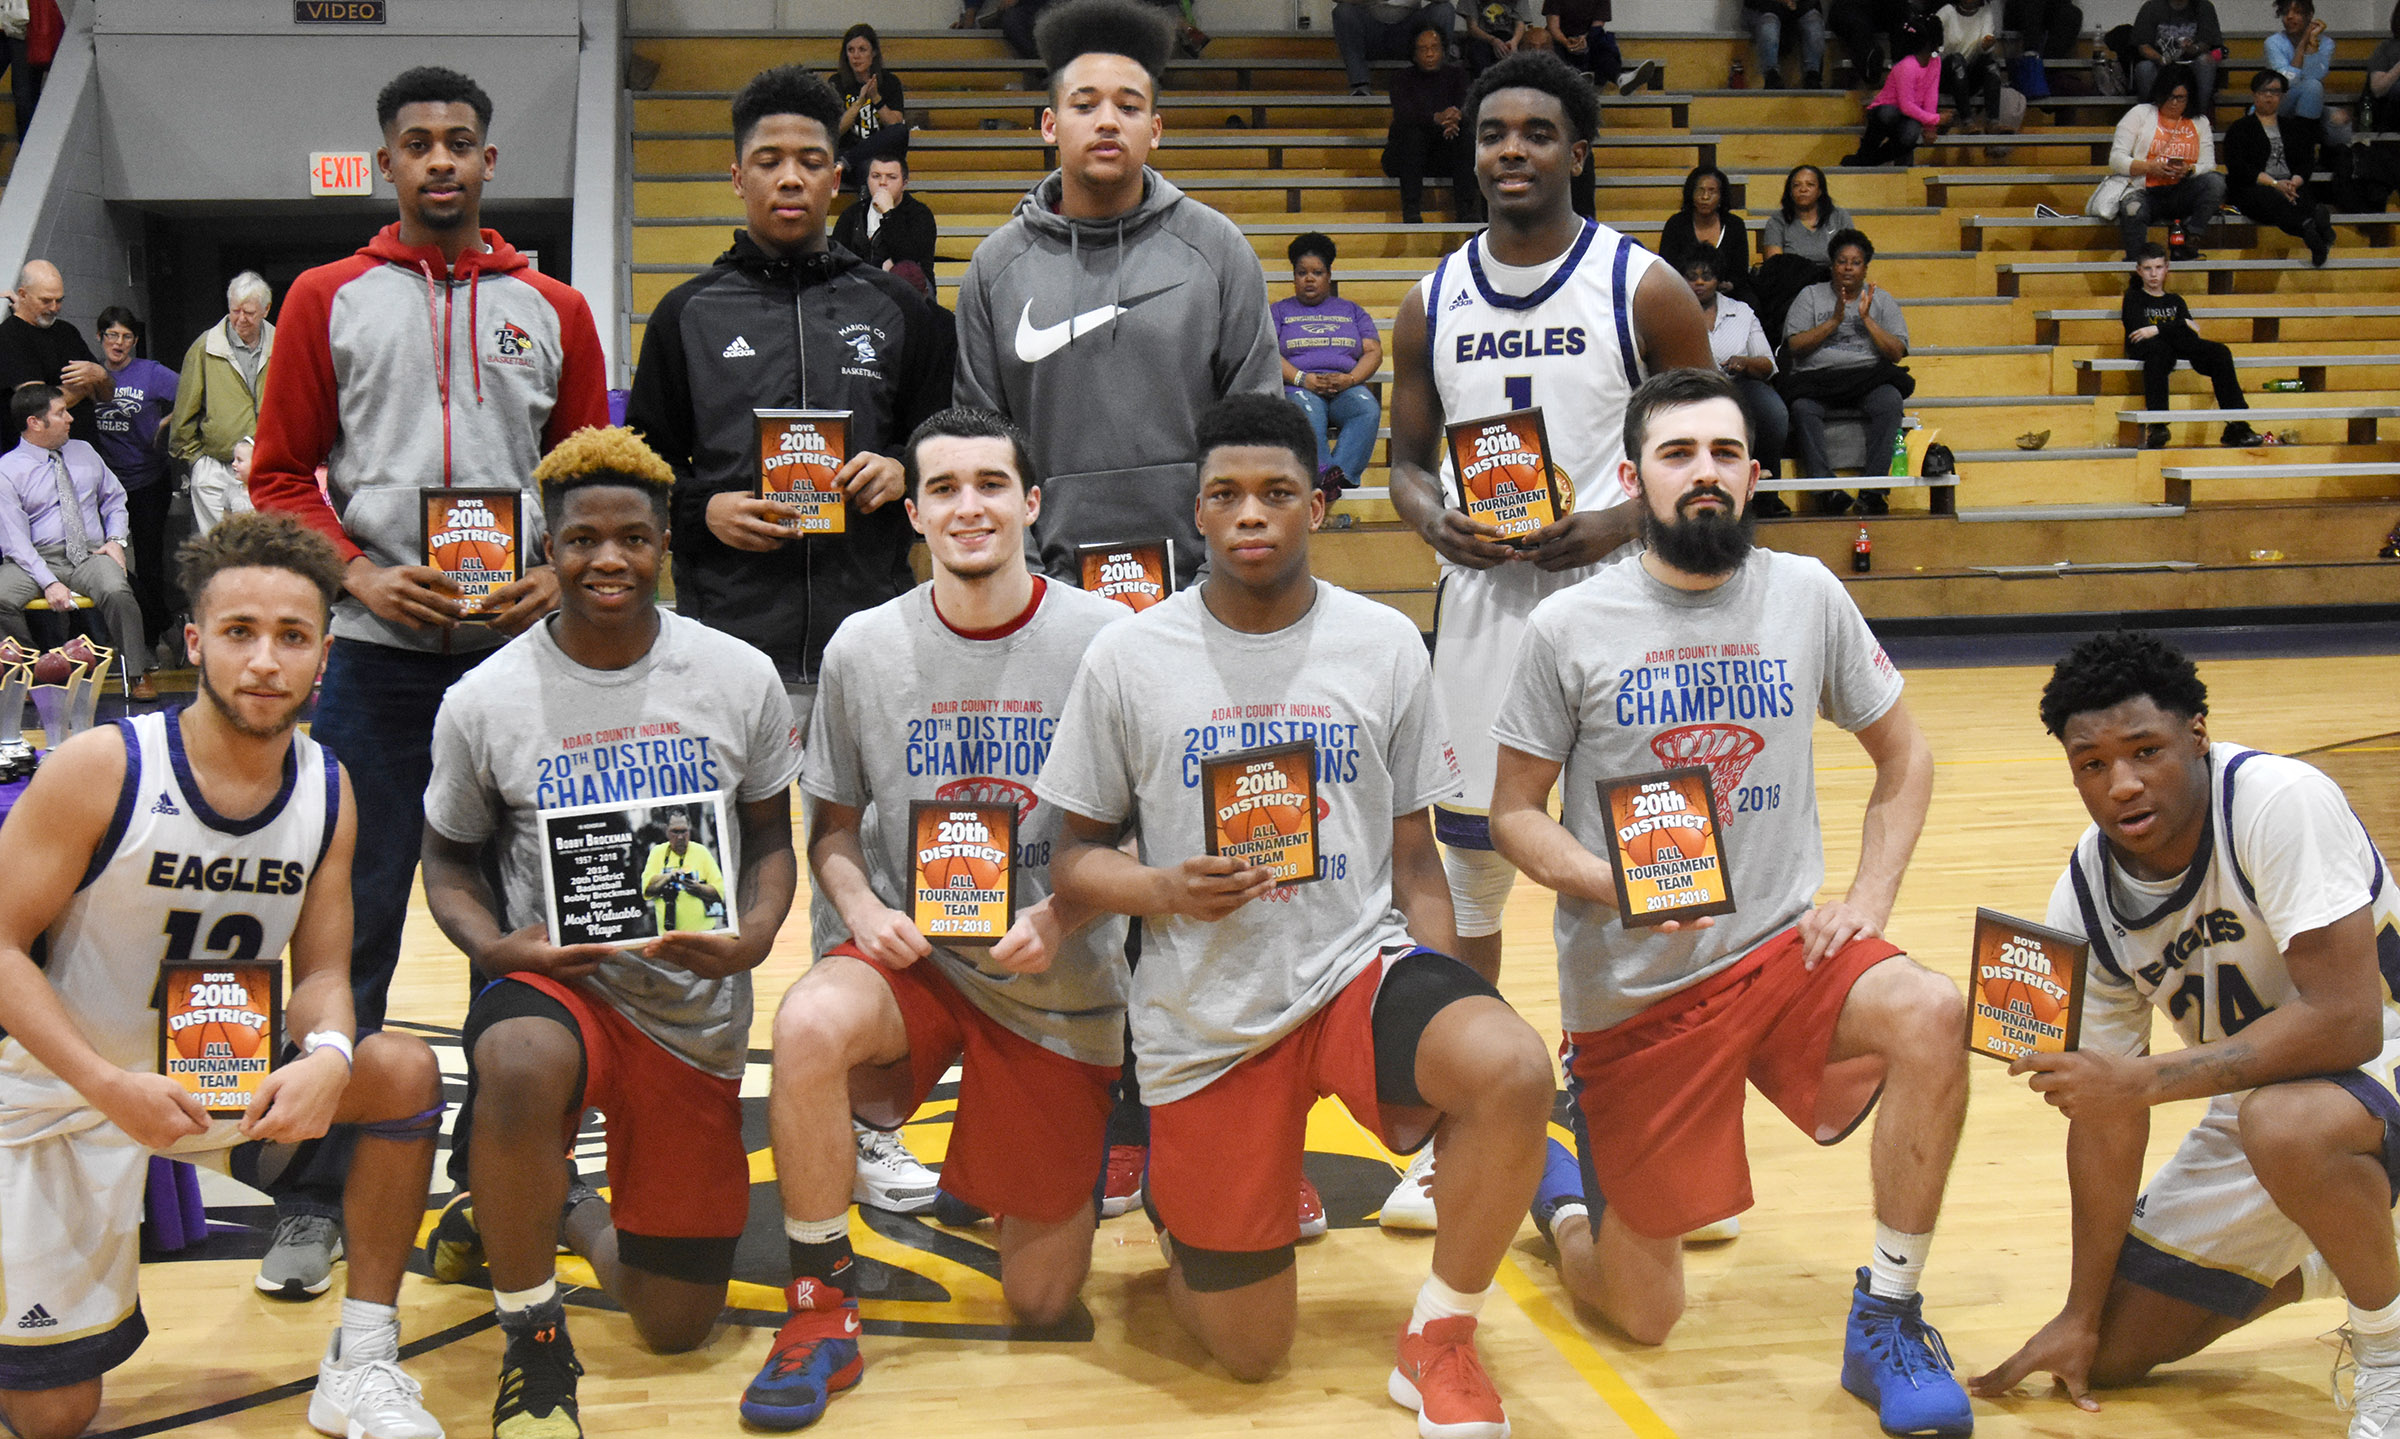 CHS senior Ethan Lay, in front, at left, Taj Sanders, a junior, in front, at right, and senior Chanson Atkinson, back, at right, receive all-district tournament awards.